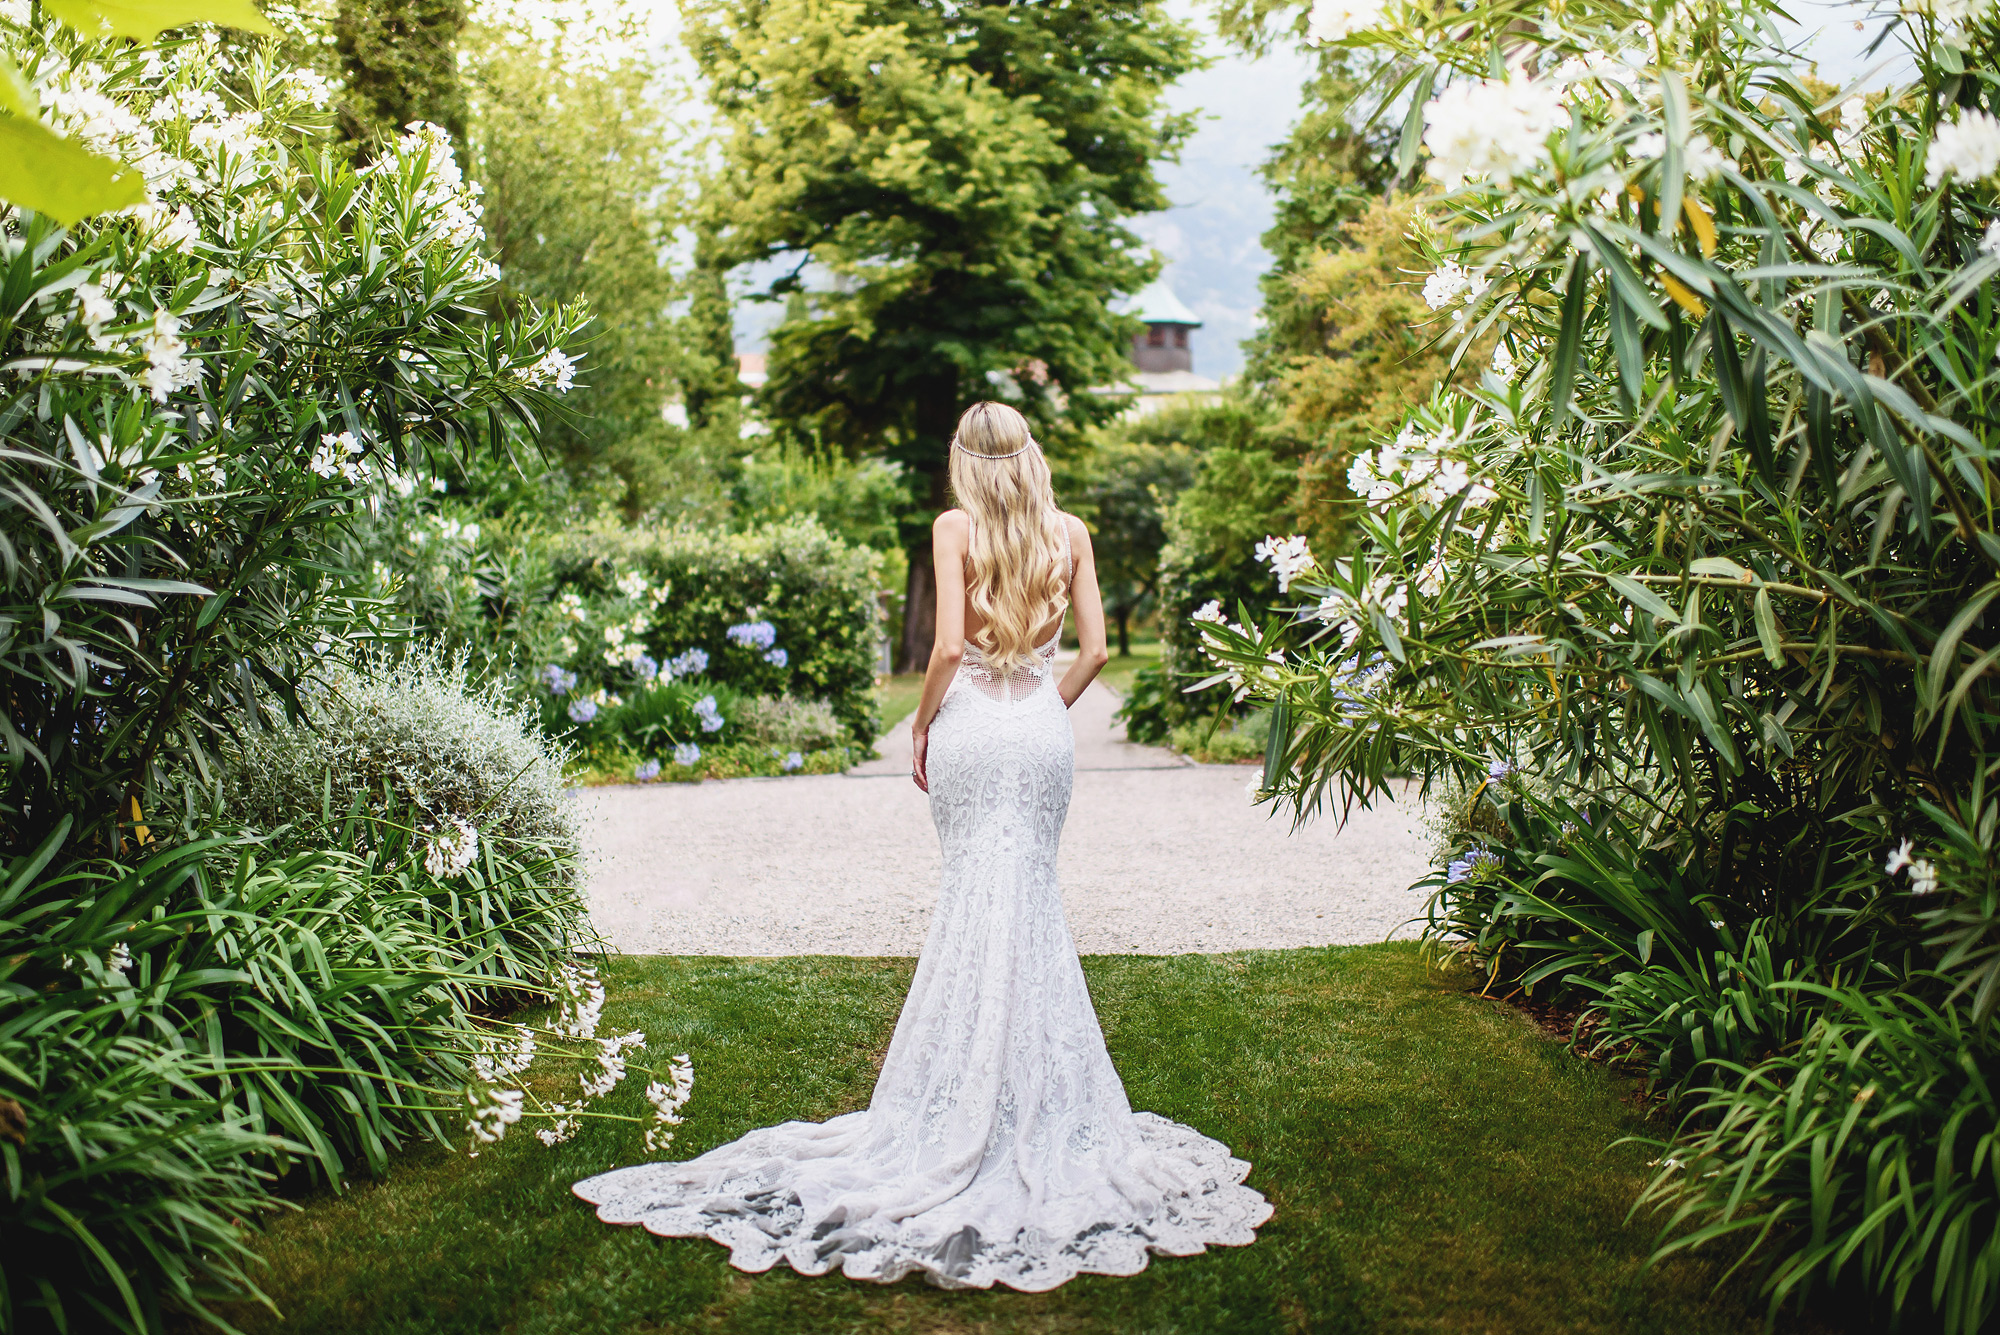 Back of low back lace dress worn by blonde bride - photo by Ross Harvey